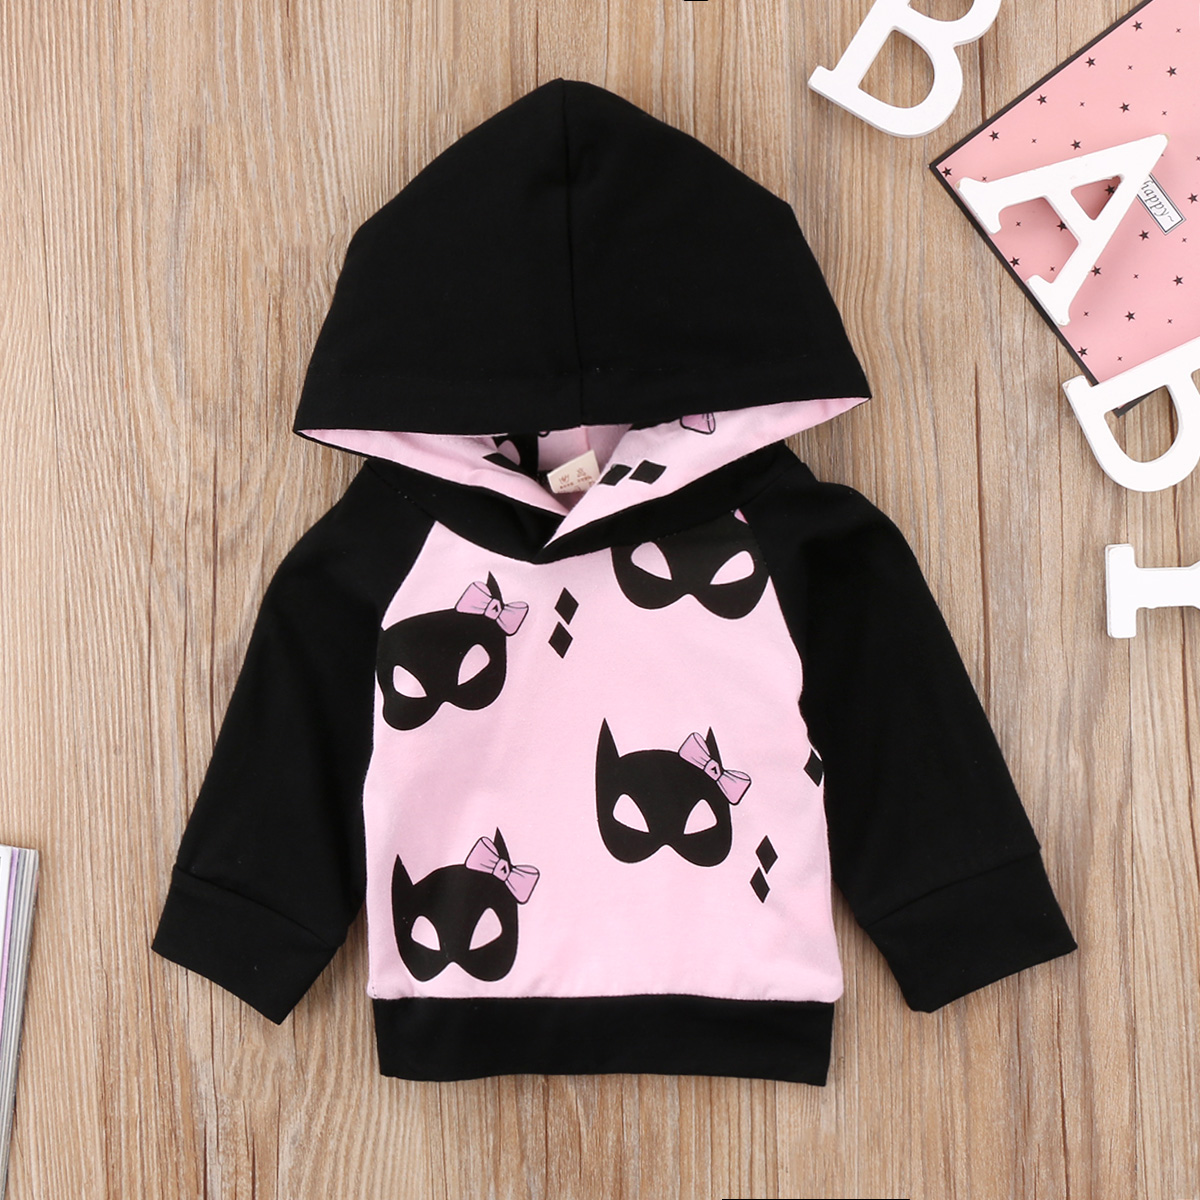 2018 New  Child Kids Baby Boys Girl Sweetshirt Long Sleeve Pink Cartoon Leisure Coat Clothes